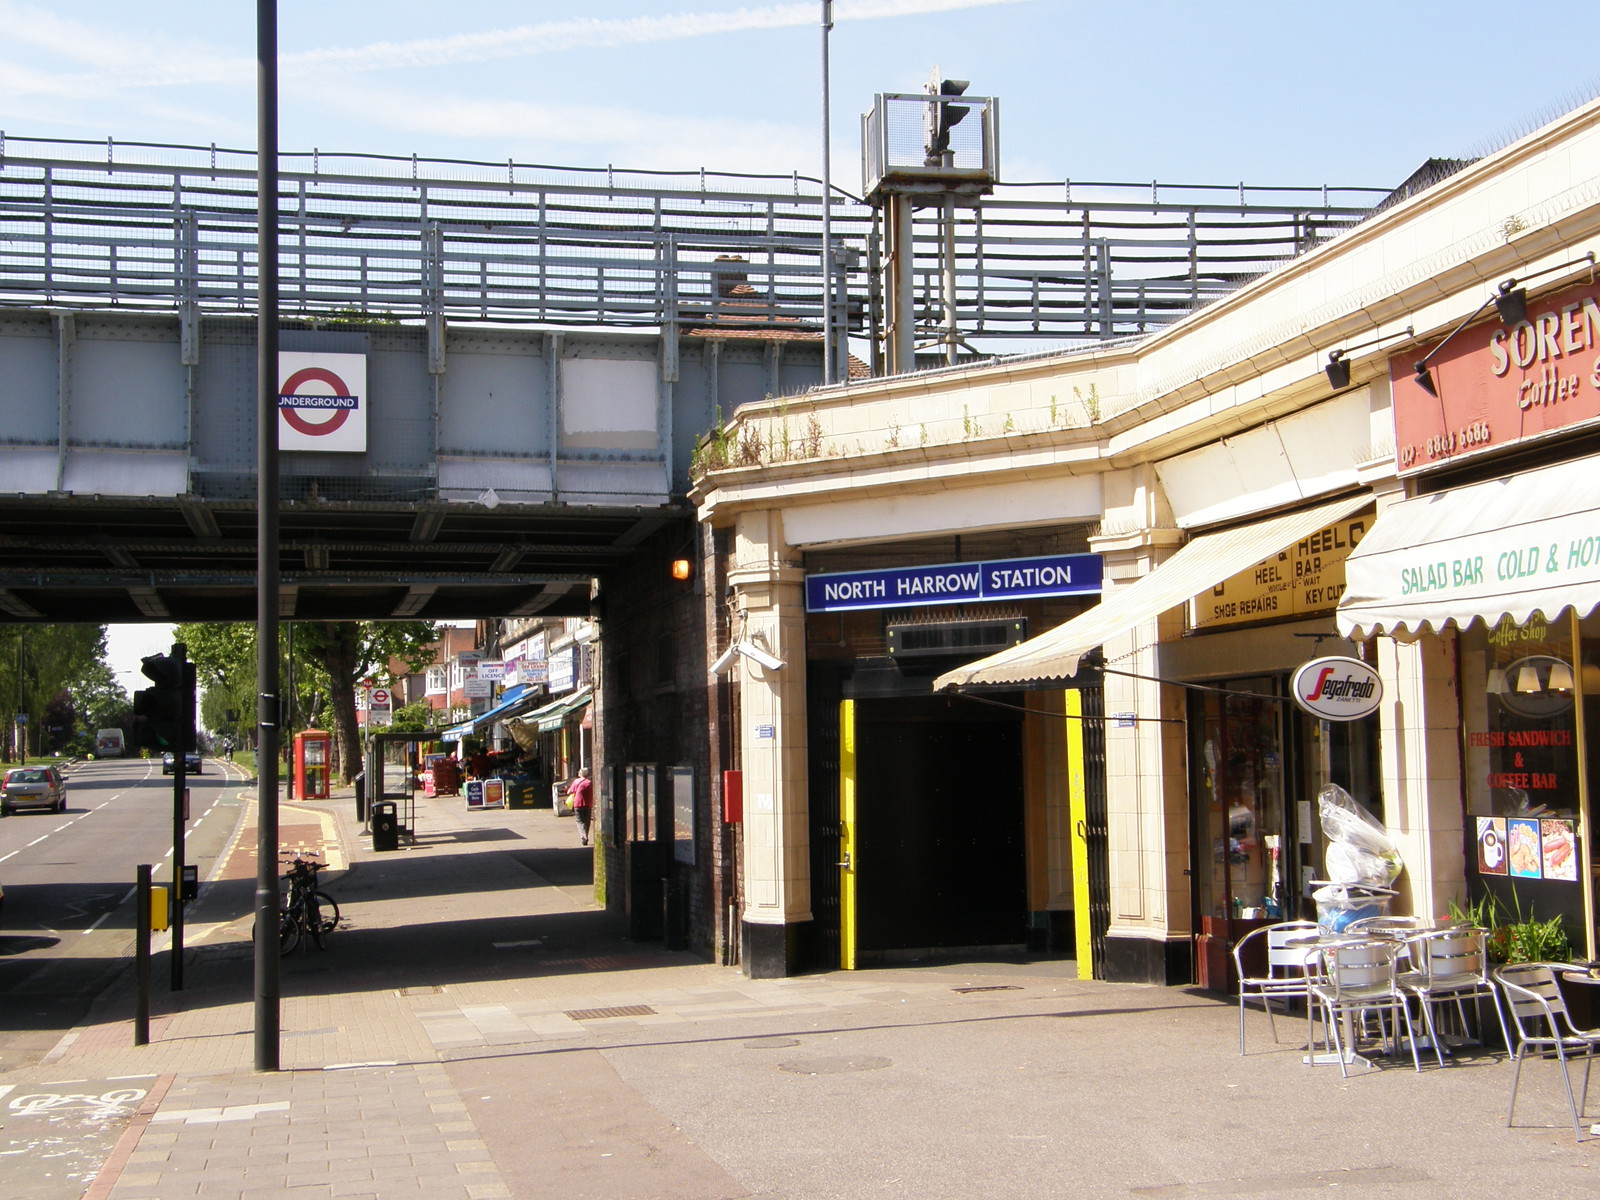 Image from North Harrow to Watford